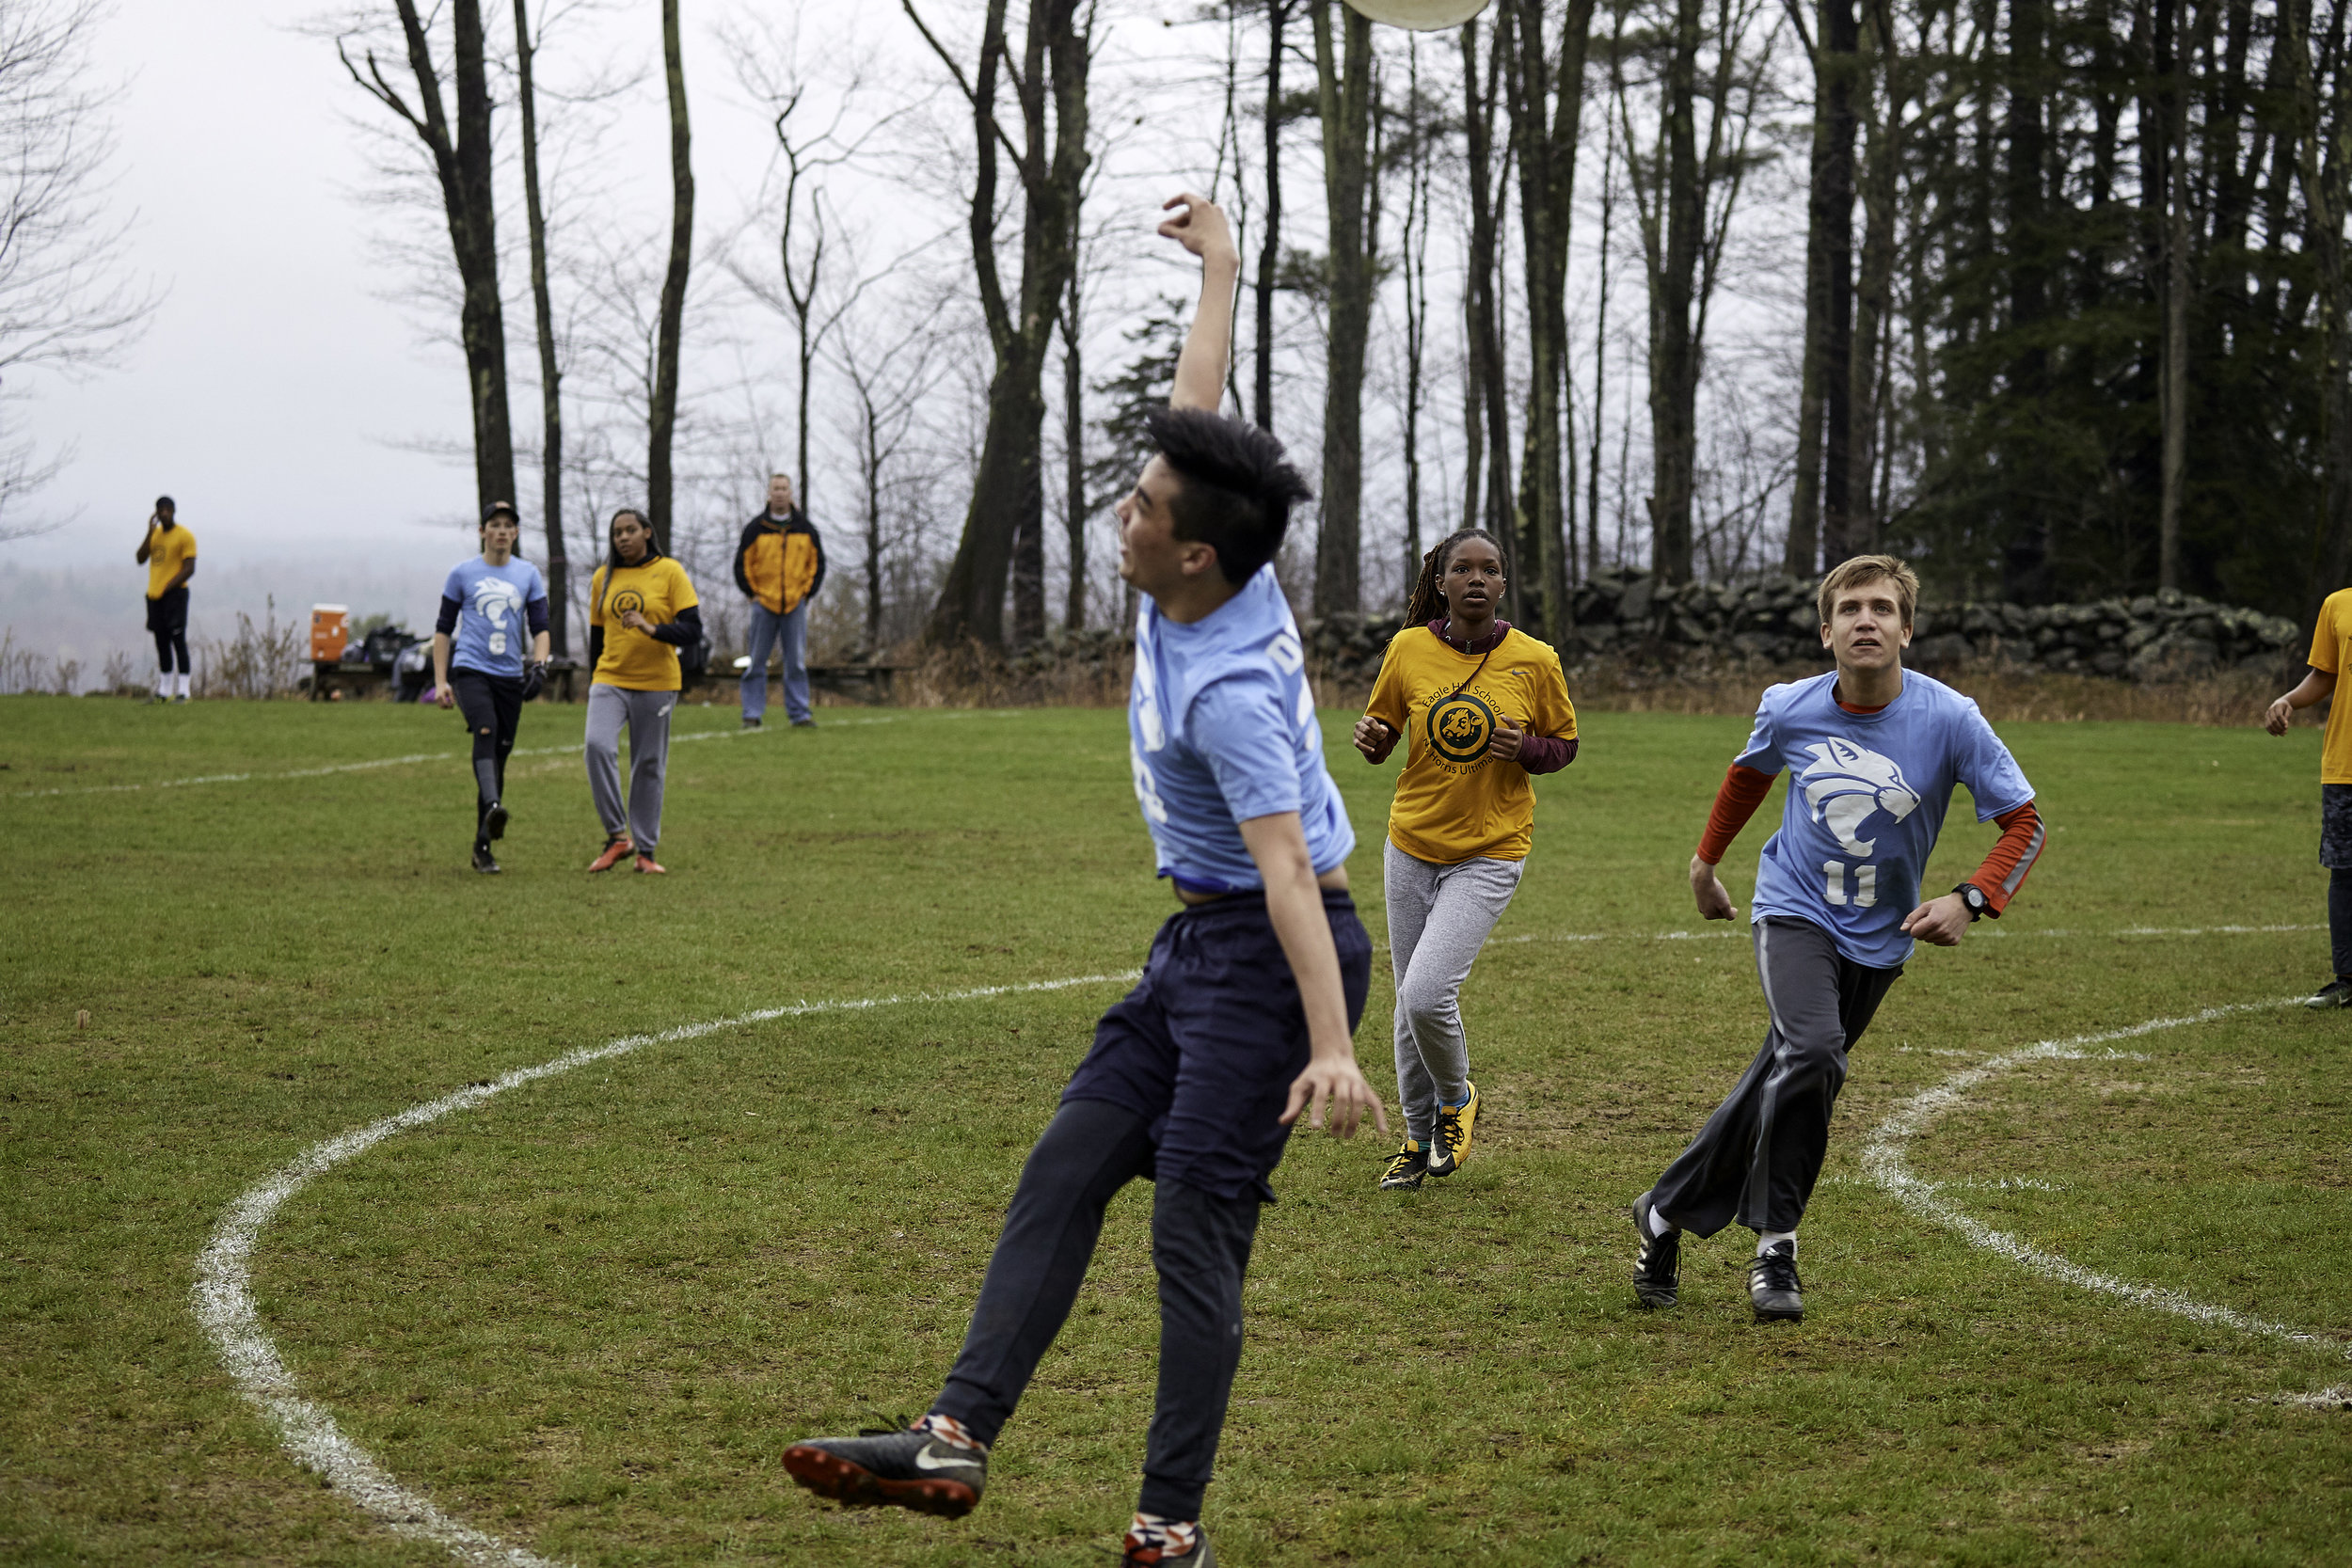 Ultimate Frisbee vs. Eagle Hill School - May 3, 2019 - 188651.jpg